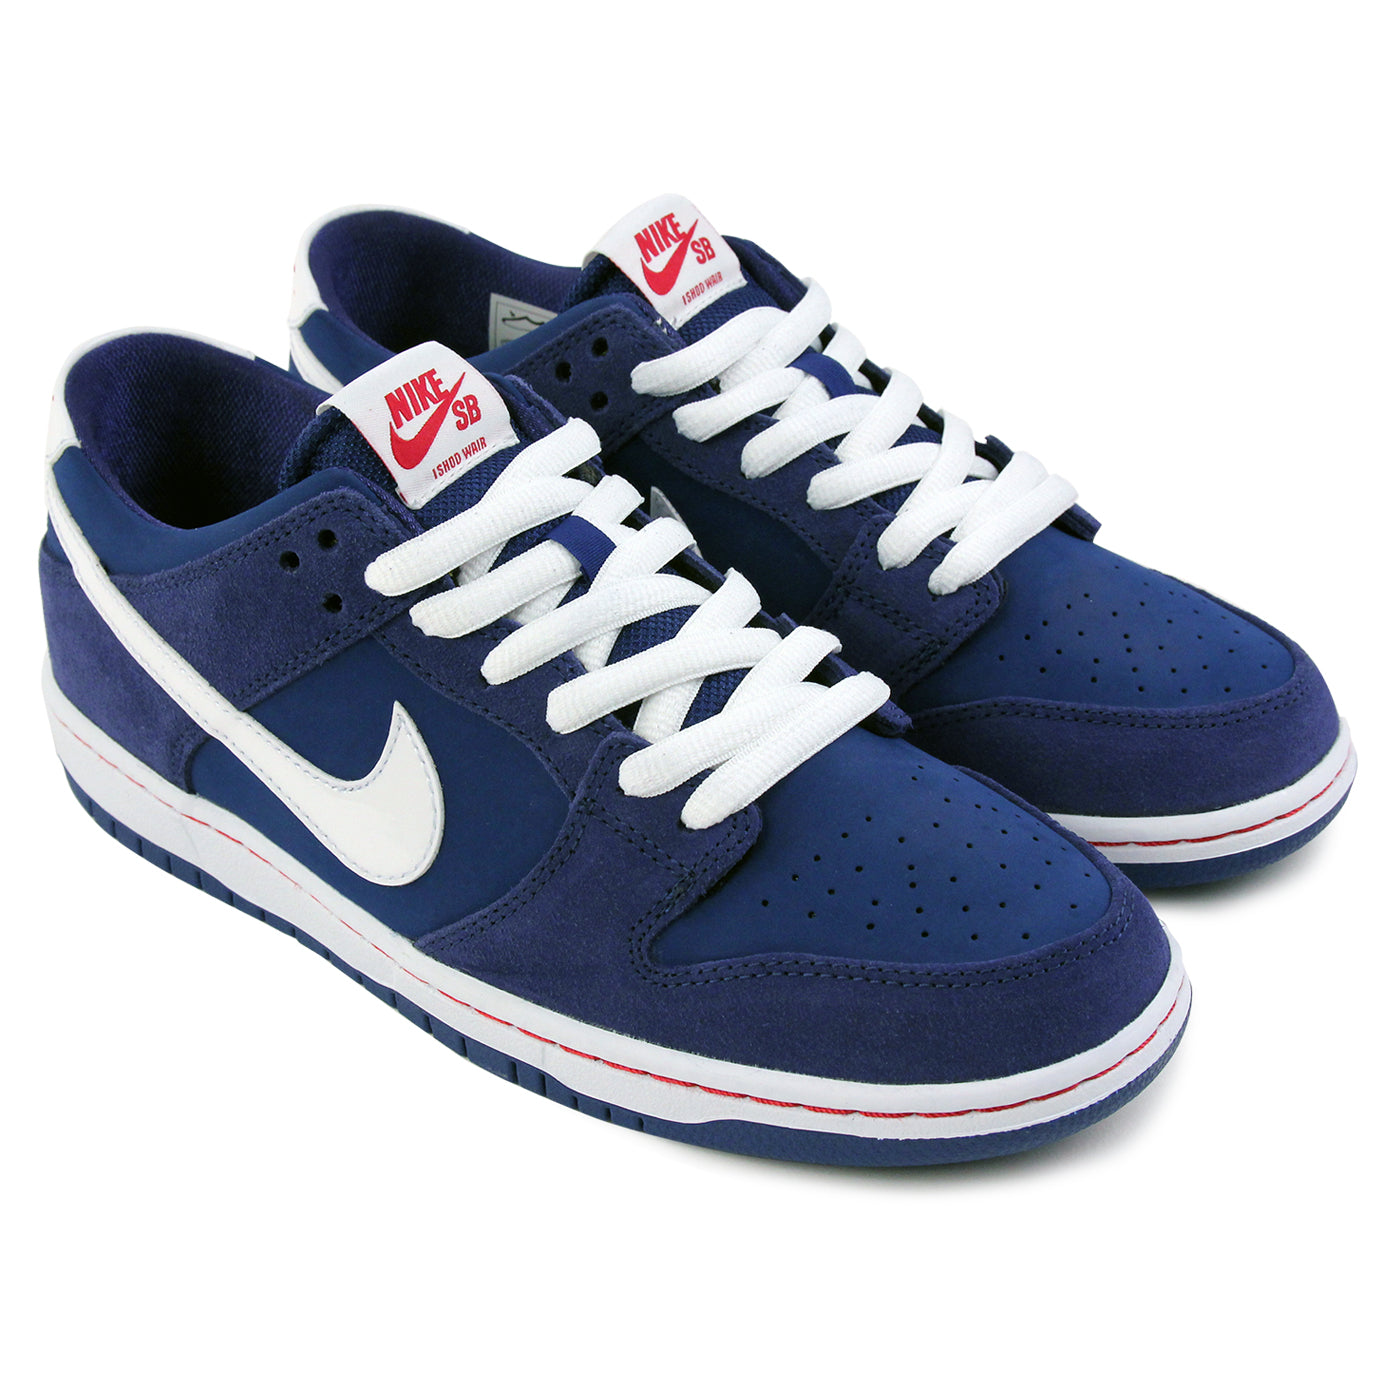 f43e8f189922 Dunk Low Pro Ishod Wair Shoes in Deep Royal   White   Gym Red by ...